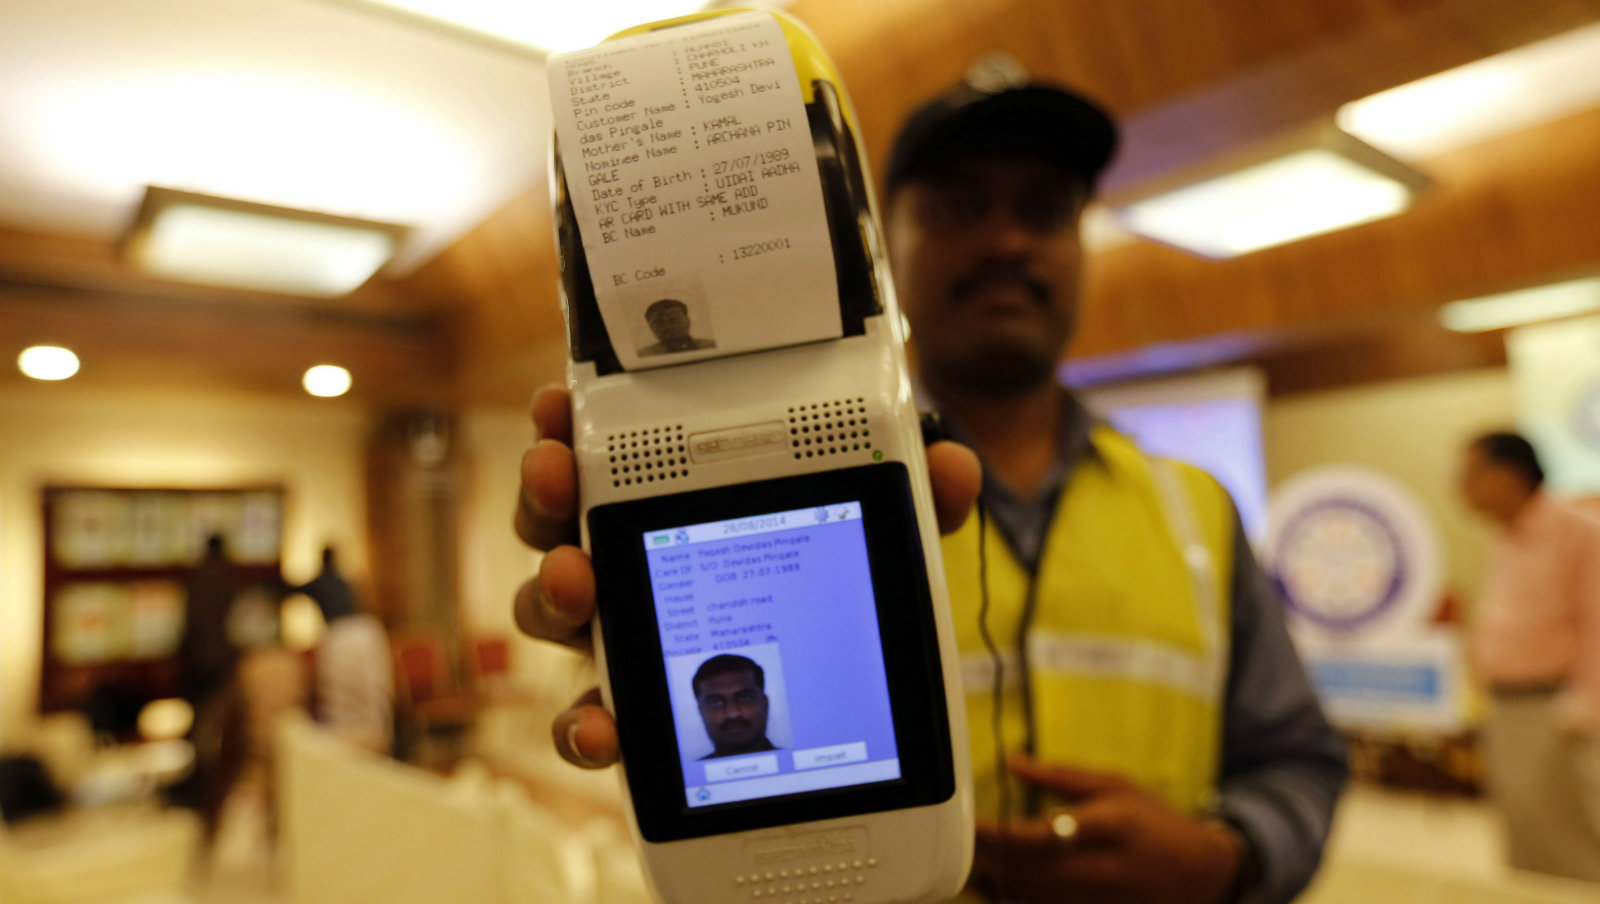 A state-owned bank officer displays a portable machine that aids in easy opening of bank accounts, during the launch of a countrywide campaign to open millions of accounts for the poor in Mumbai, India, Thursday, Aug. 28, 2014. The measure is aimed at some 150 million Indians who are off the financial grid and vulnerable to black market money lenders. As an incentive the federal government is providing 100,000 rupees ($1,650) in life insurance to every account holder.